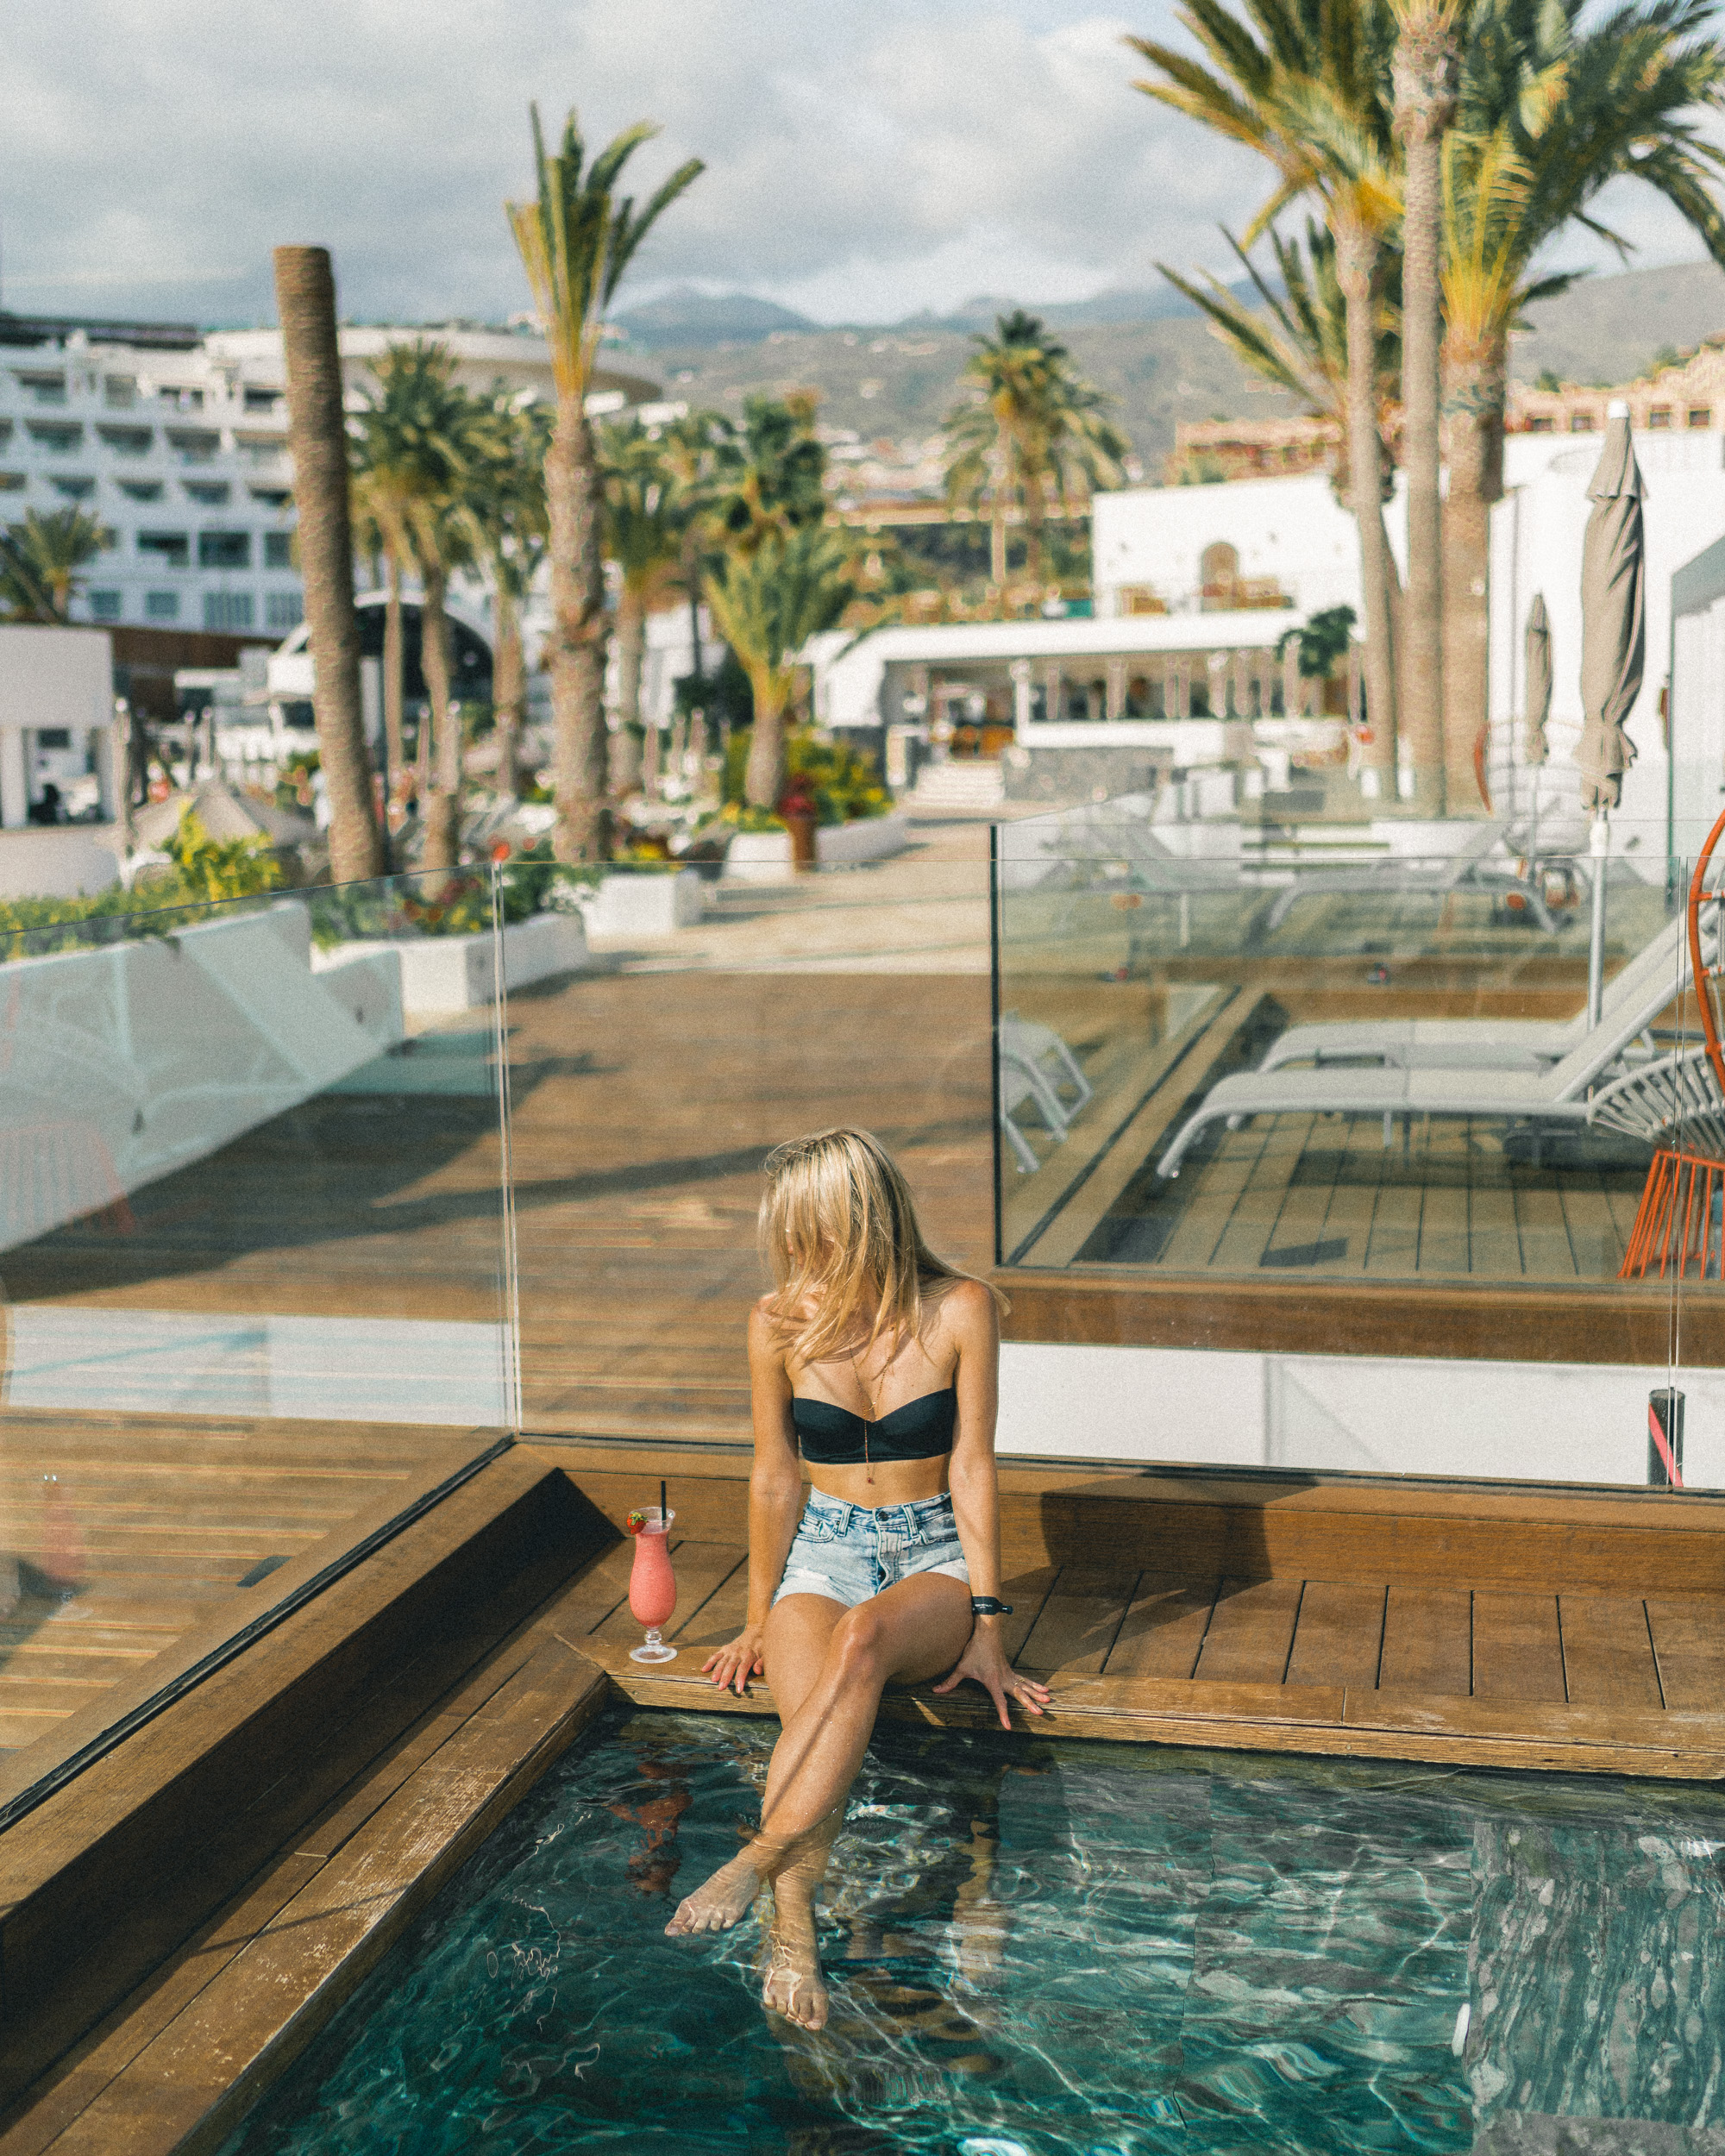 Hard Rock Hotel pool in Tenerife, Canary Islands, Spain